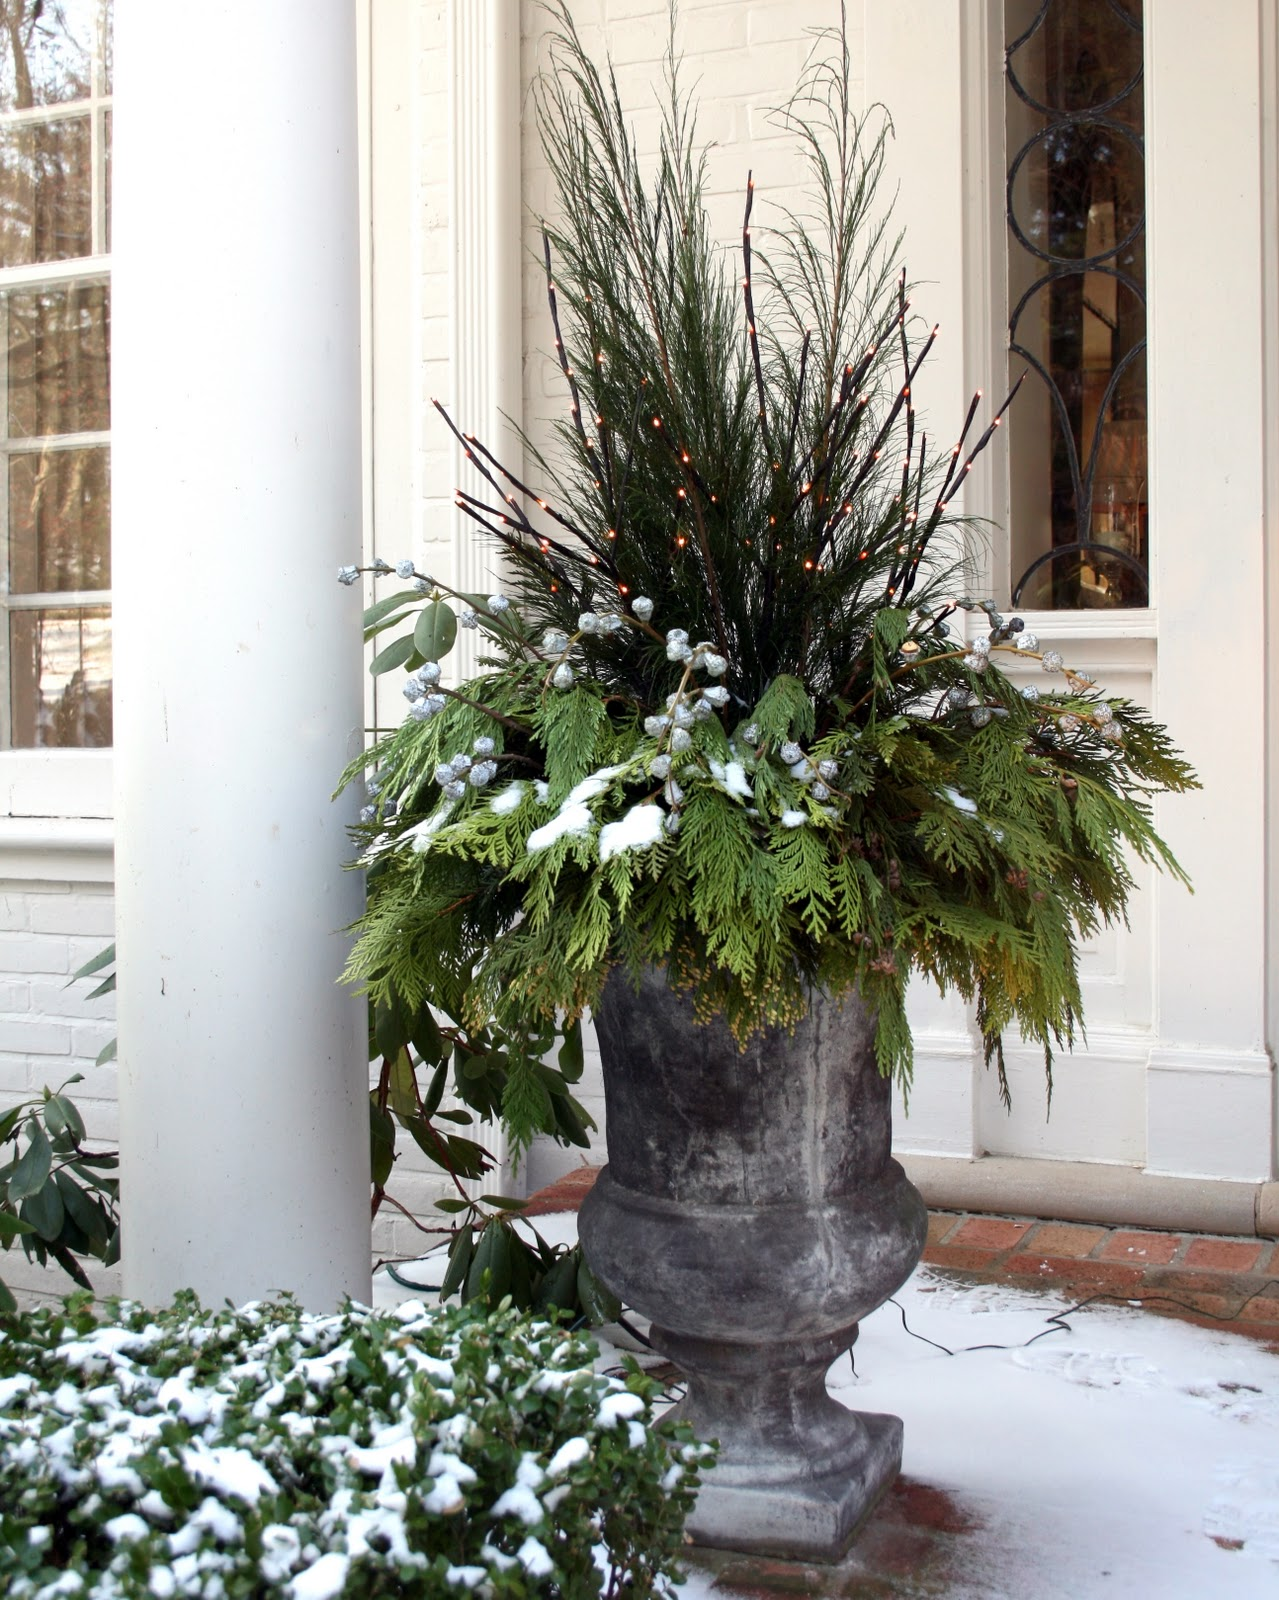 Antiqueaholics: OUTDOOR DECORATING - KEEPING IT SIMPLE